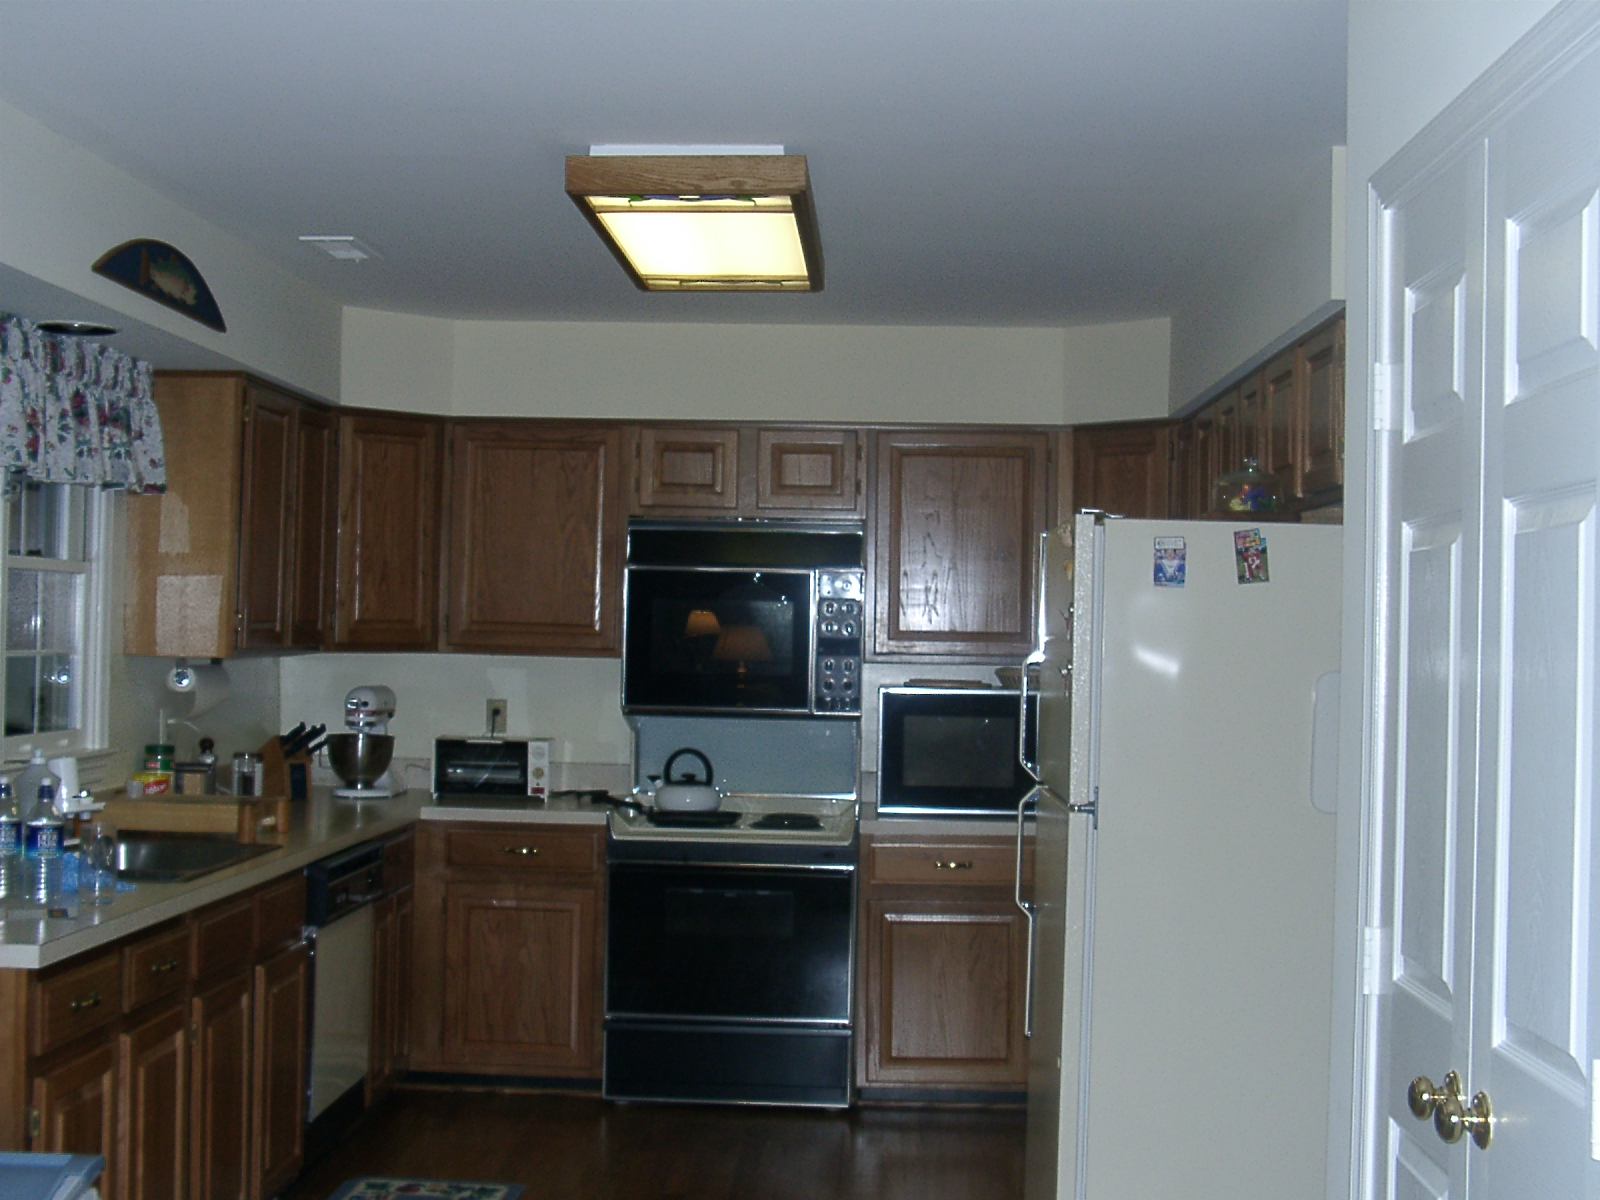 Cabinet colors suggestions granite laminate corian for Suggested colors for kitchens